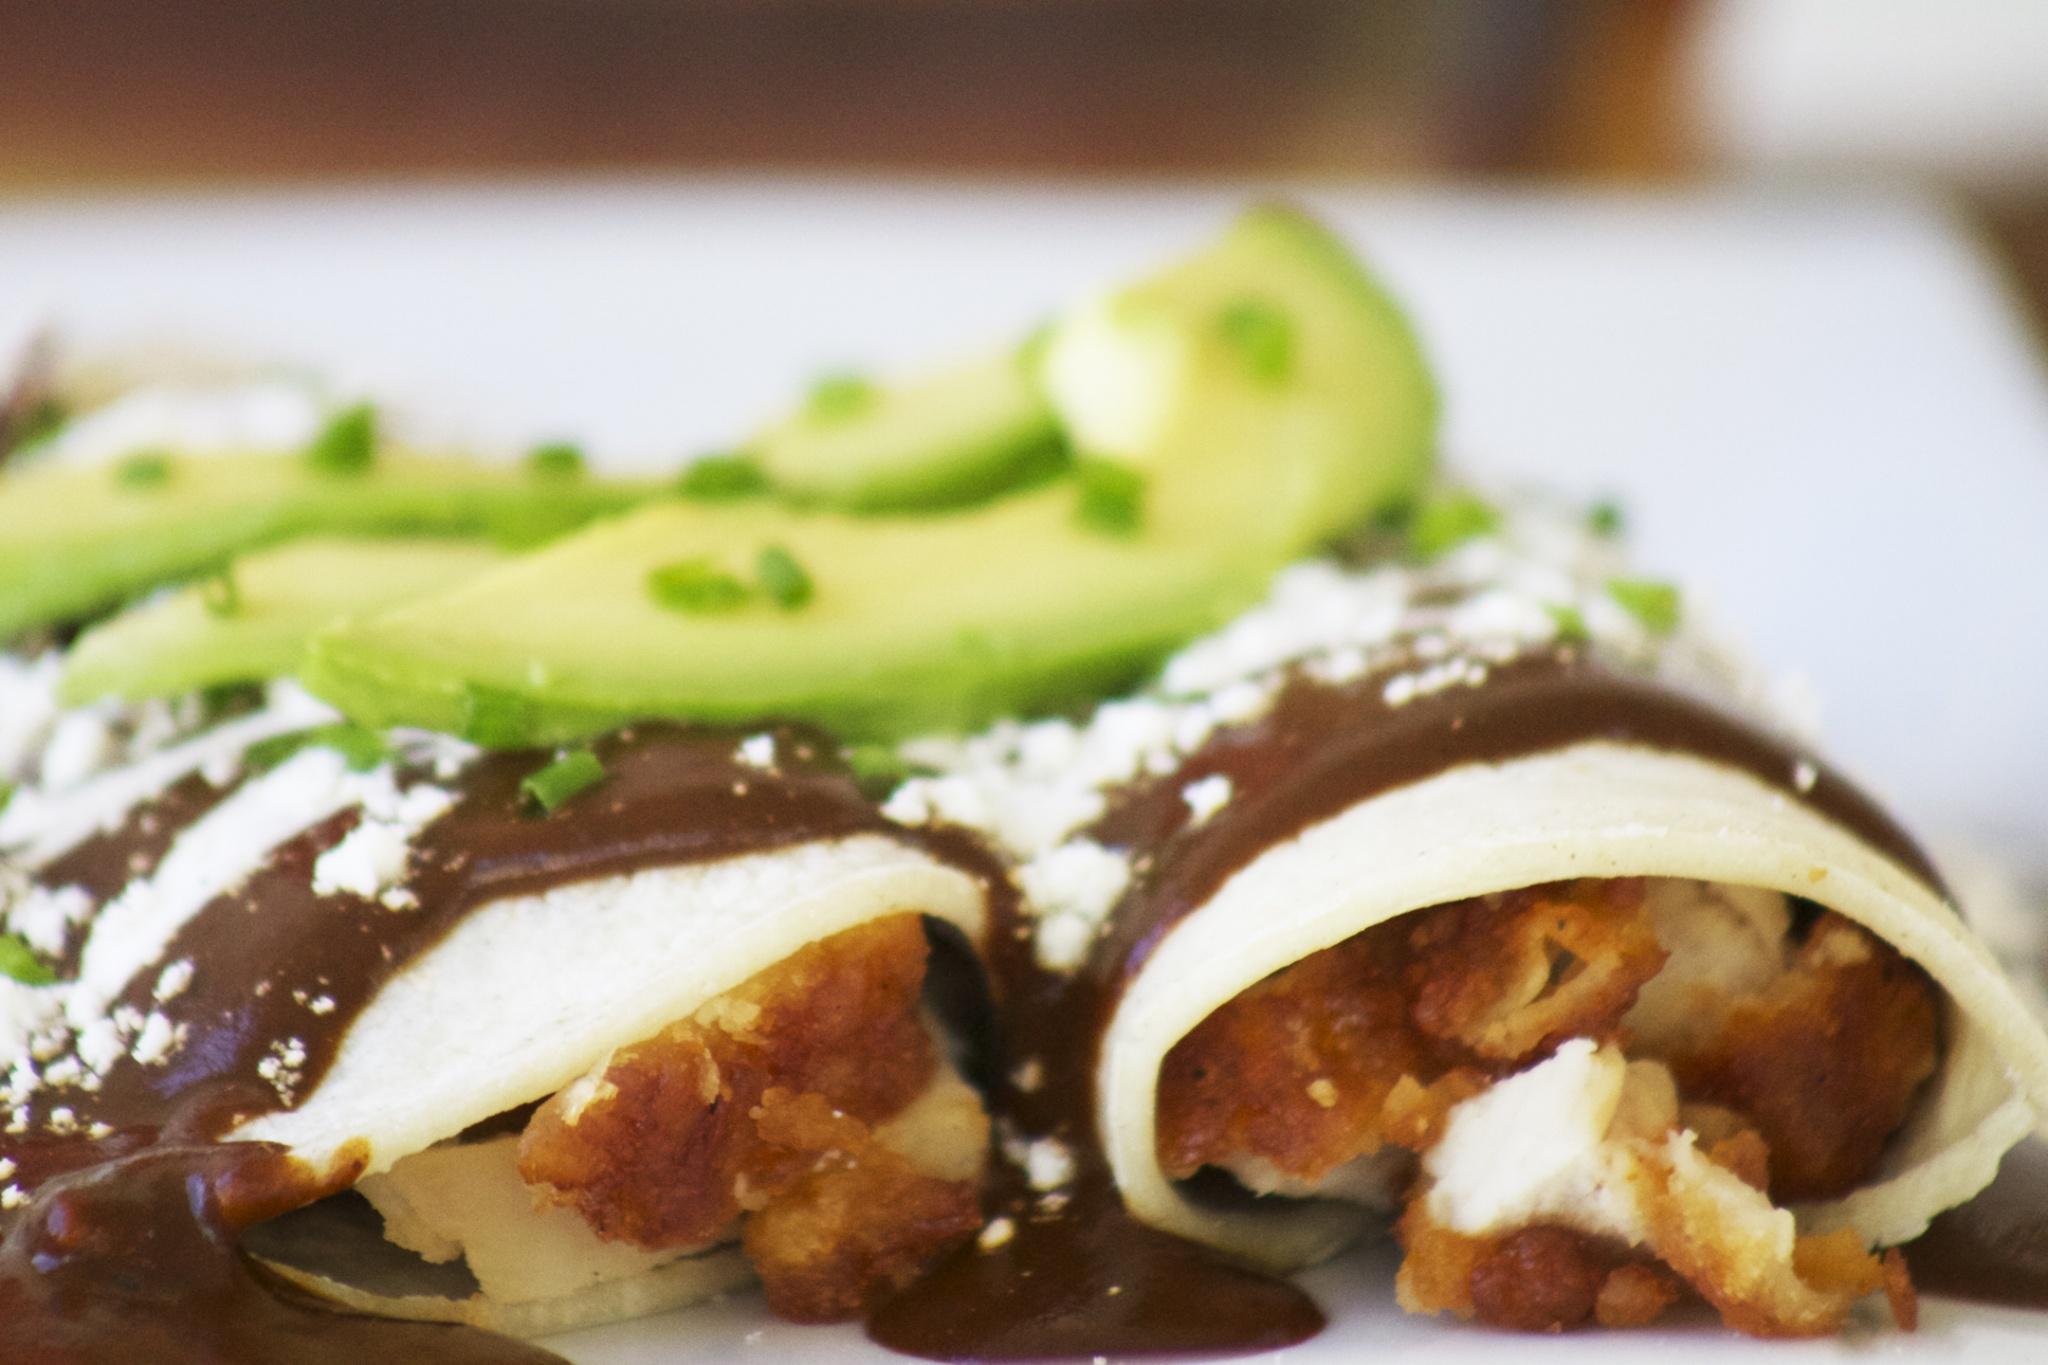 BBQ Mole Enchiladas. Combining Latino and American flavors.